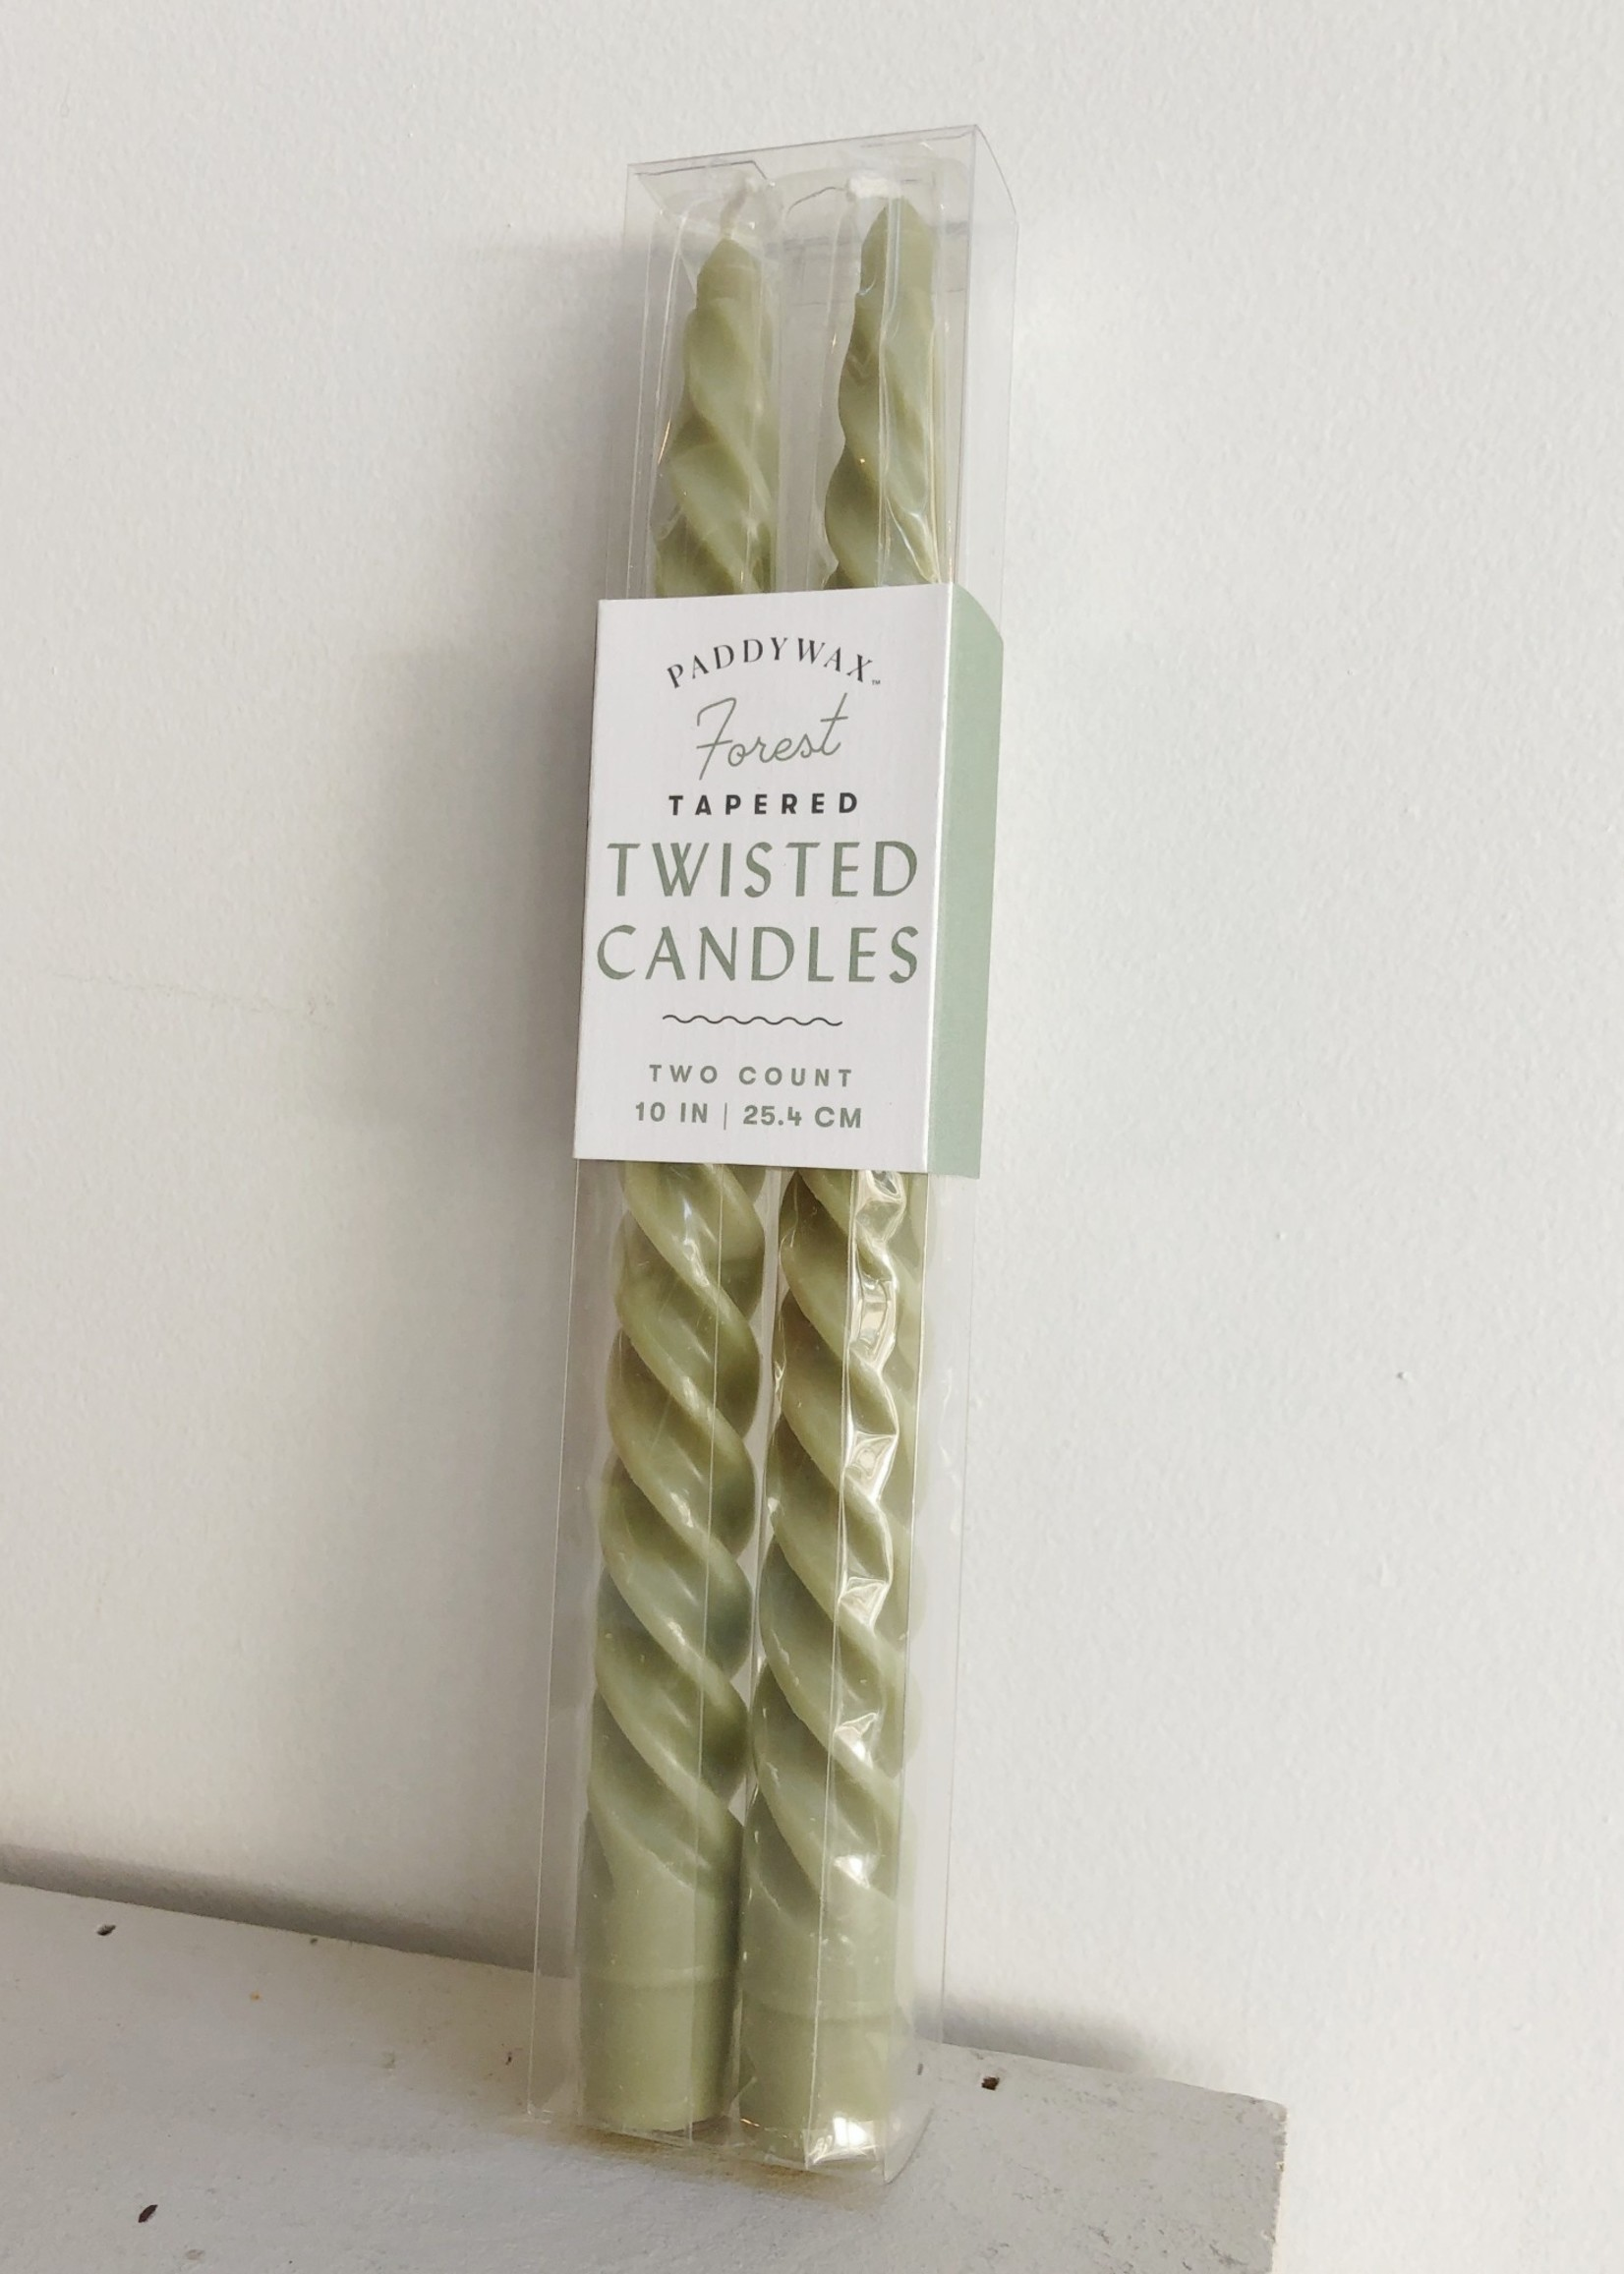 Paddywax Fall Twisted Candles Pair by Paddywax